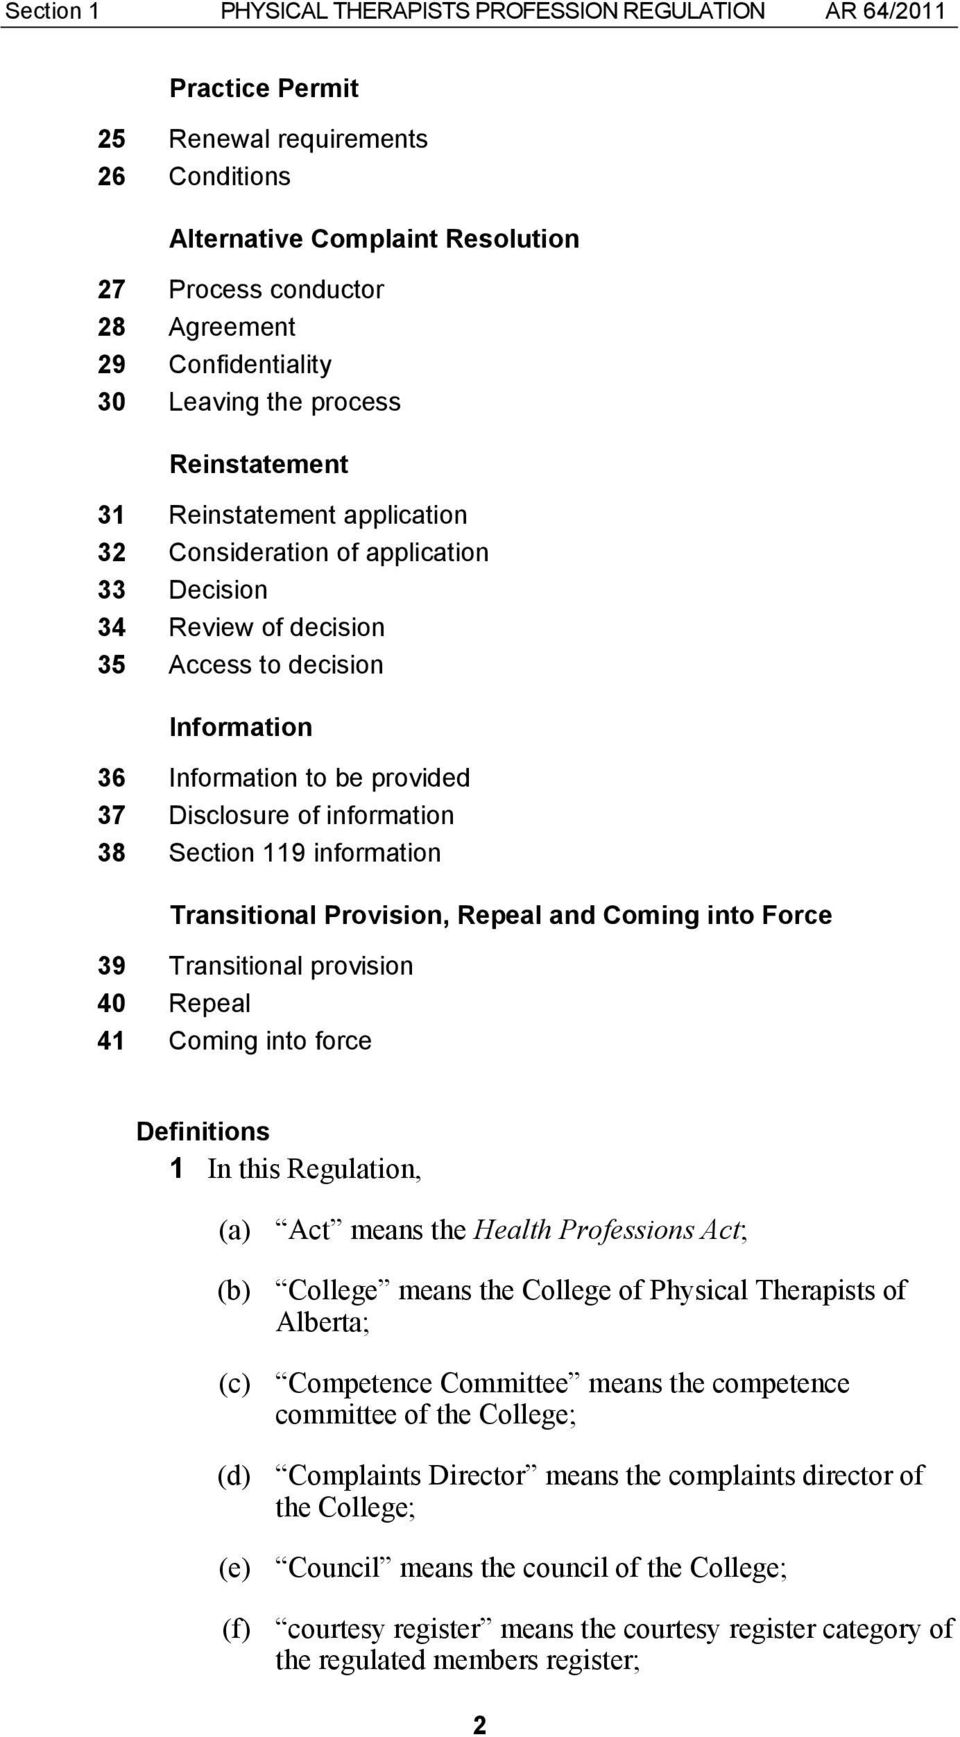 be provided 37 Disclosure of information 38 Section 119 information Transitional Provision, Repeal and Coming into Force 39 Transitional provision 40 Repeal 41 Coming into force Definitions 1 In this